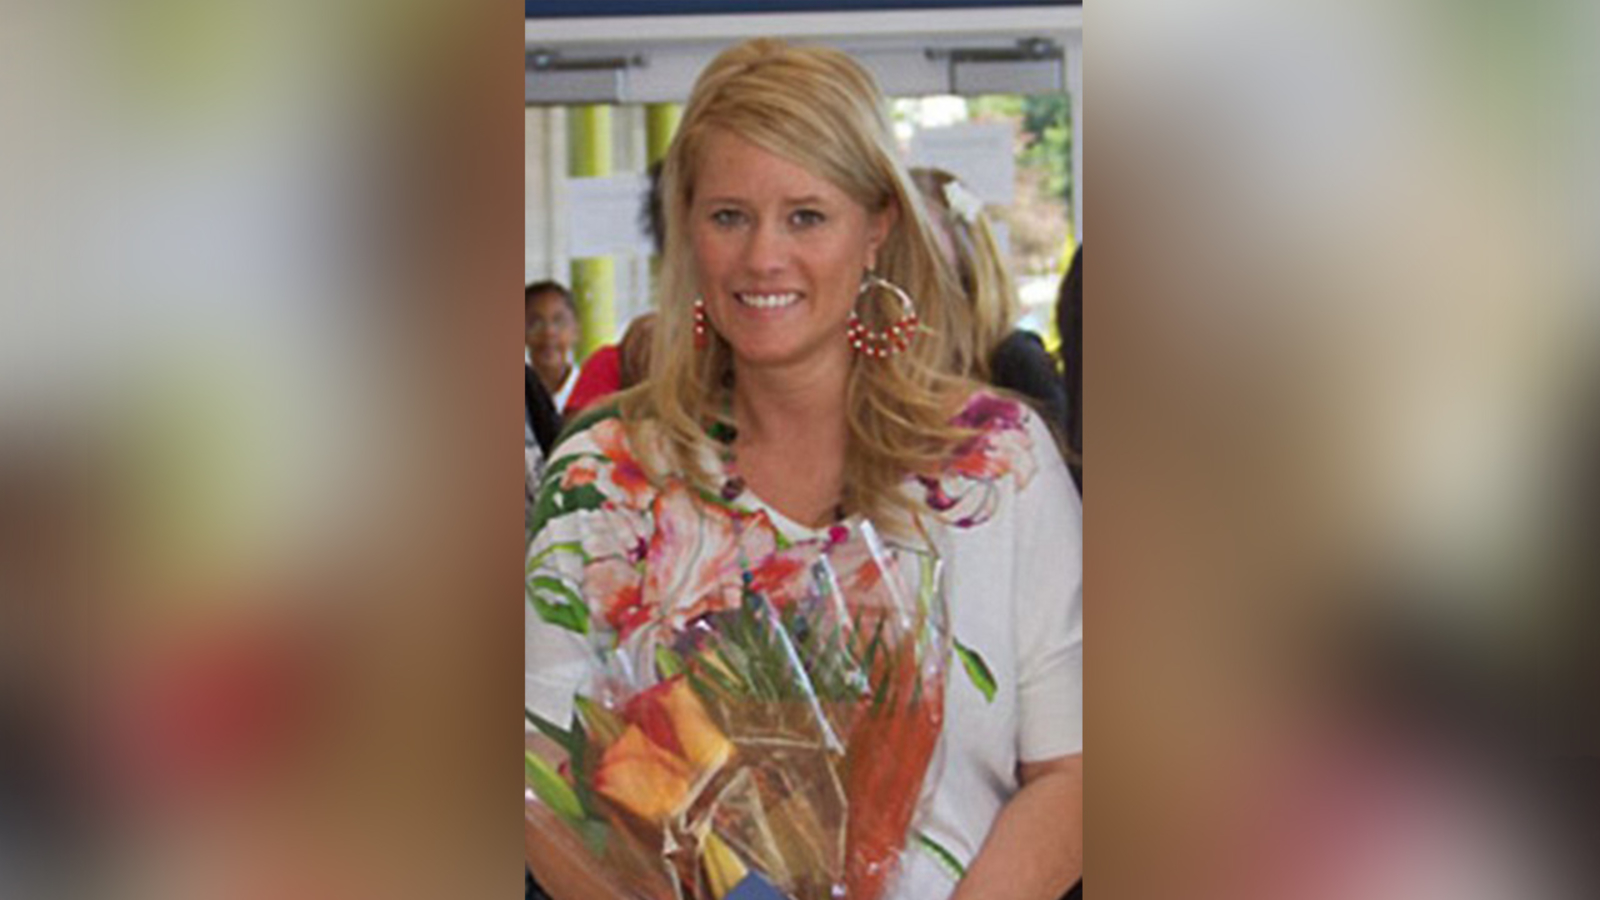 Teacher Of The Year In Washington Accused Of Raping -8869